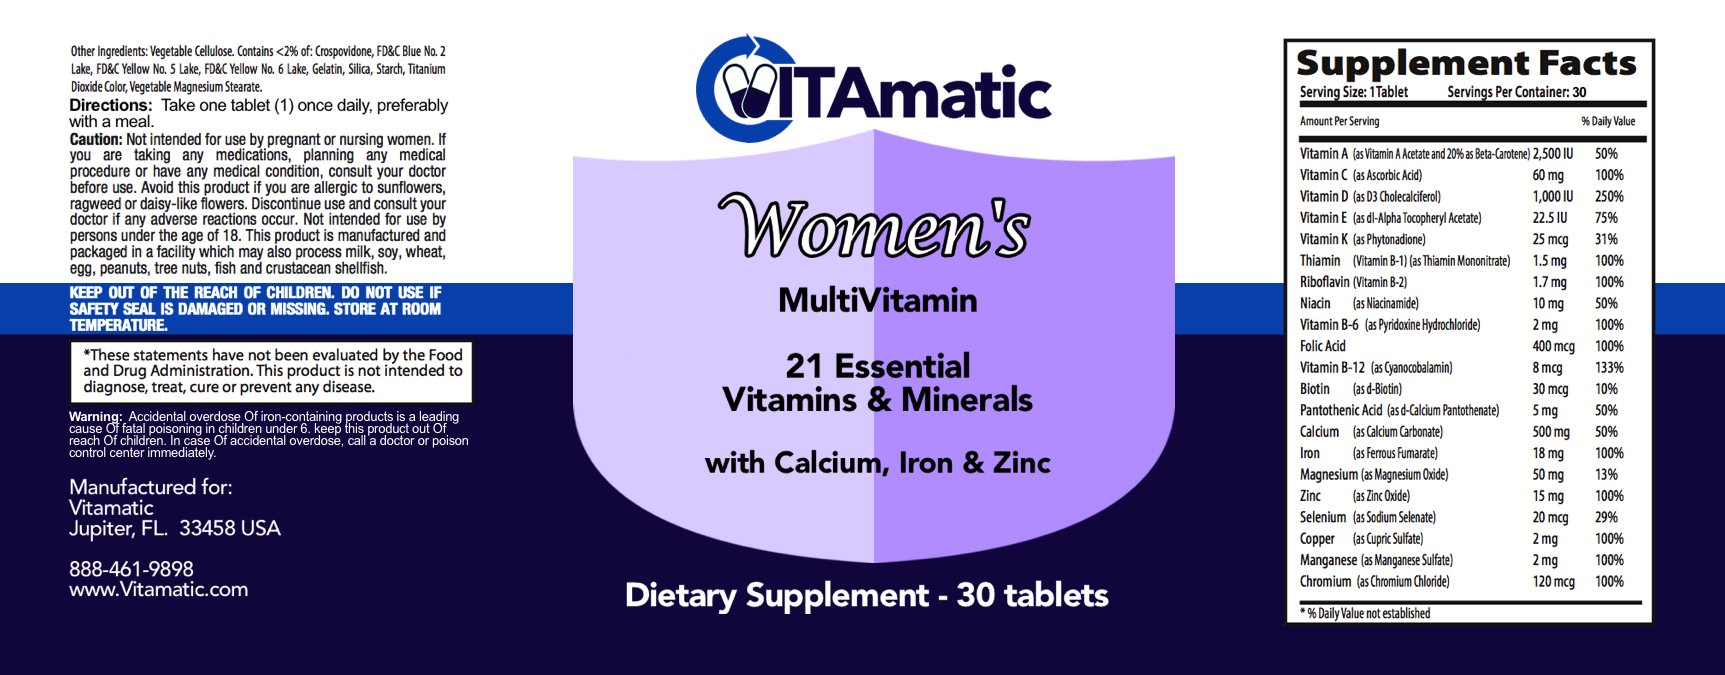 vitamatic womens multivitamin label